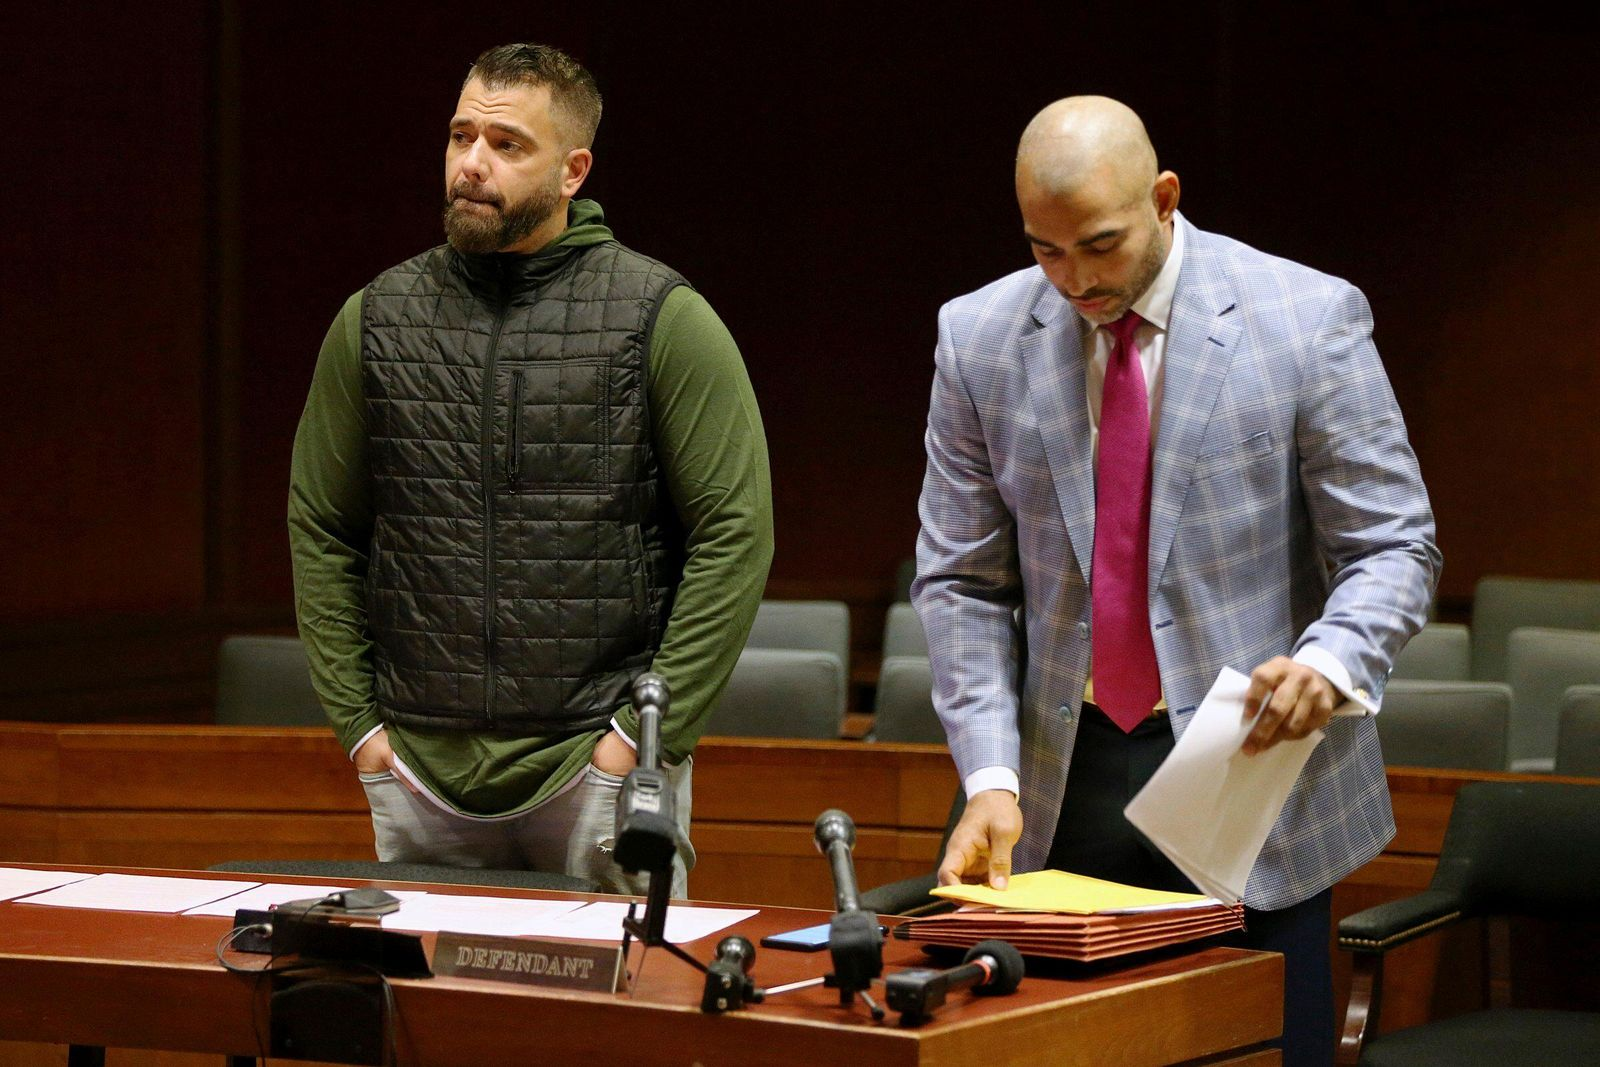 Mark D'Amico, left, stands with his lawyer, Mark Davis, as he prepares to plead guilty to one count of misappropriating entrusted funds in Burlington County Superior Court in Mount Holly, N.J., on Friday, Dec. 6, 2019. (Tim Tai/The Philadelphia Inquirer via AP)